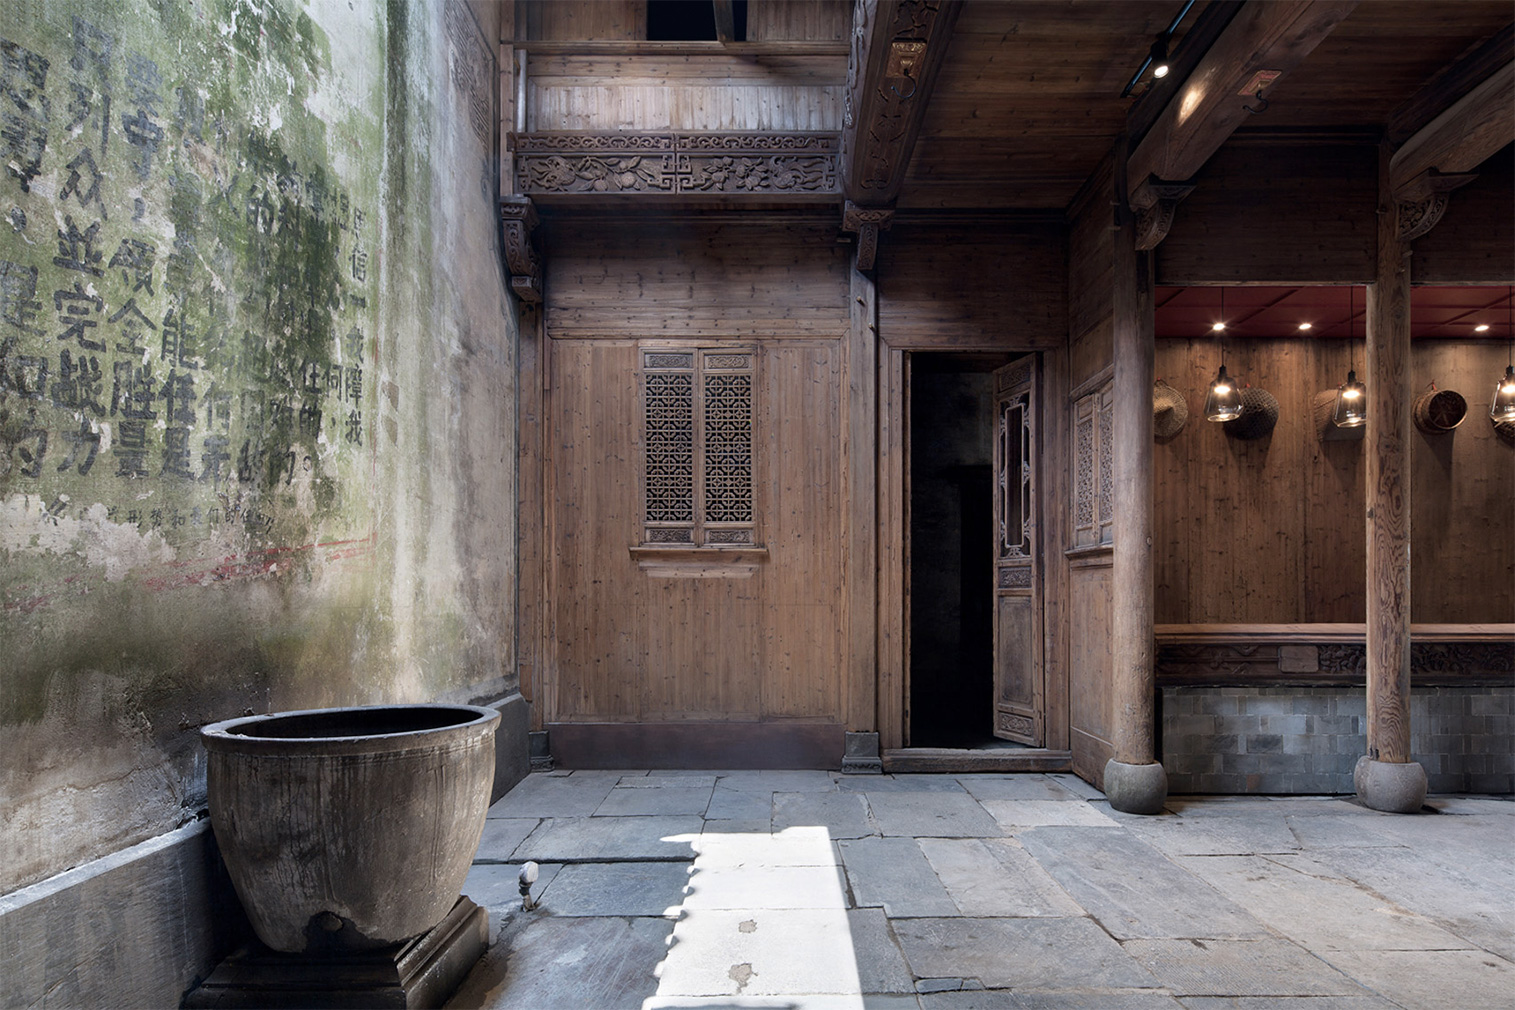 A 300-year-old ruin is restored as a hotel in rural China